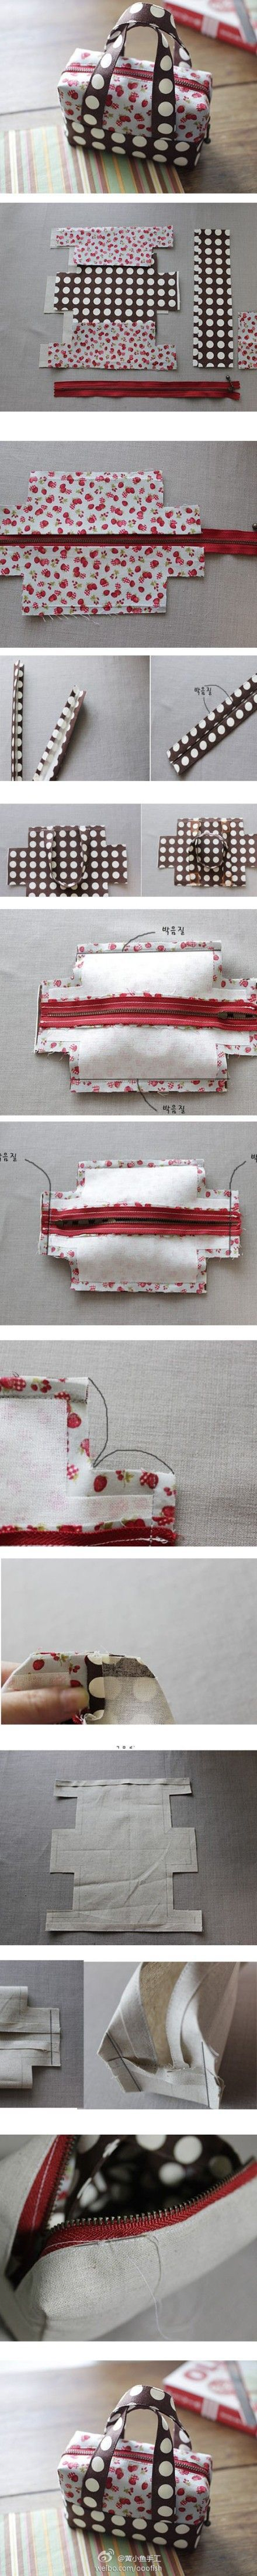 SERIOUSLY cute bag, tutorial in pictures.